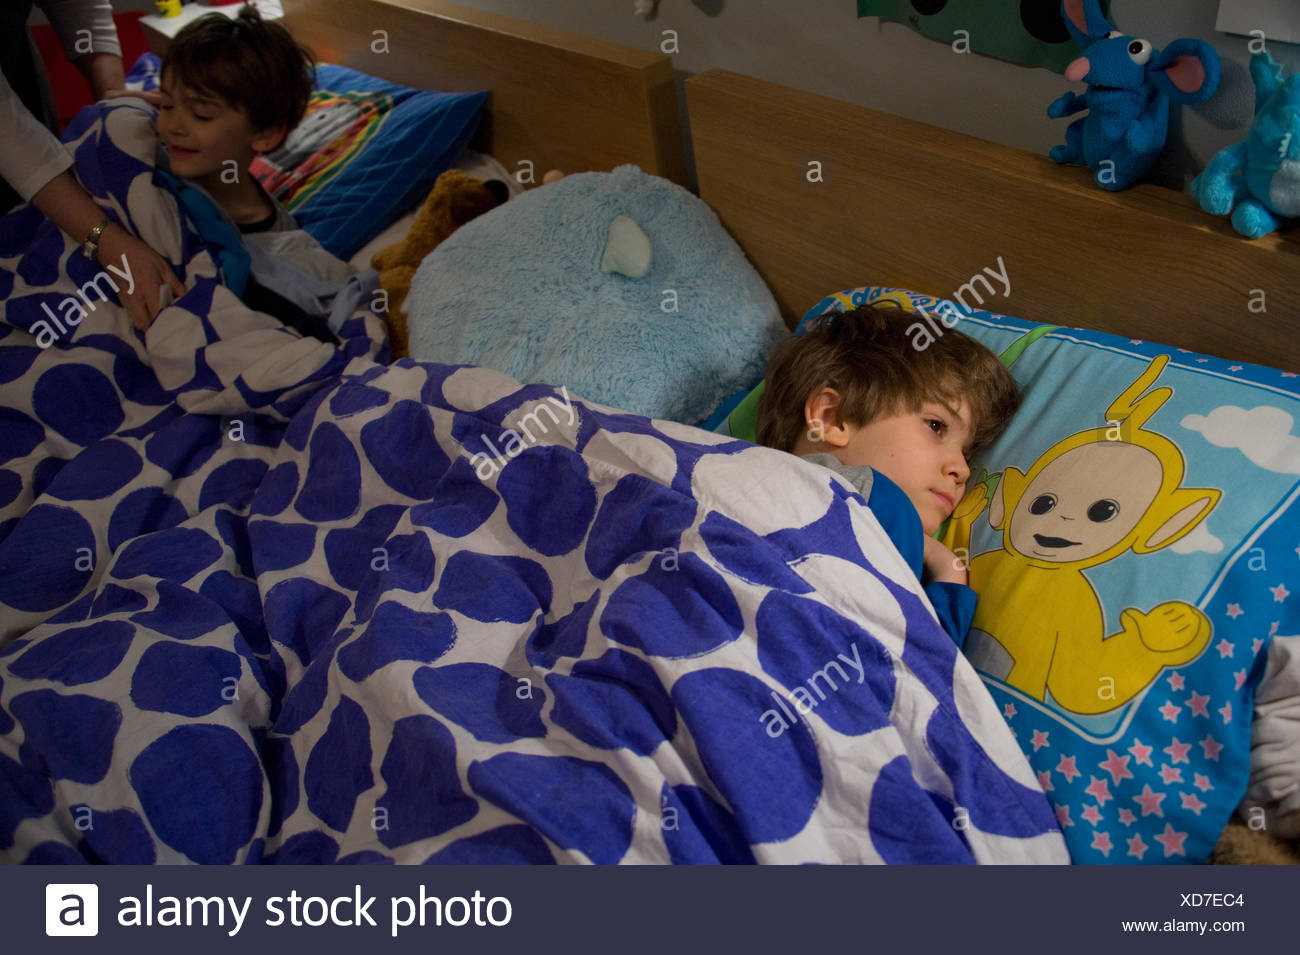 Twin boys who function on the opposite ends of the autism spectrum. - Stock Image